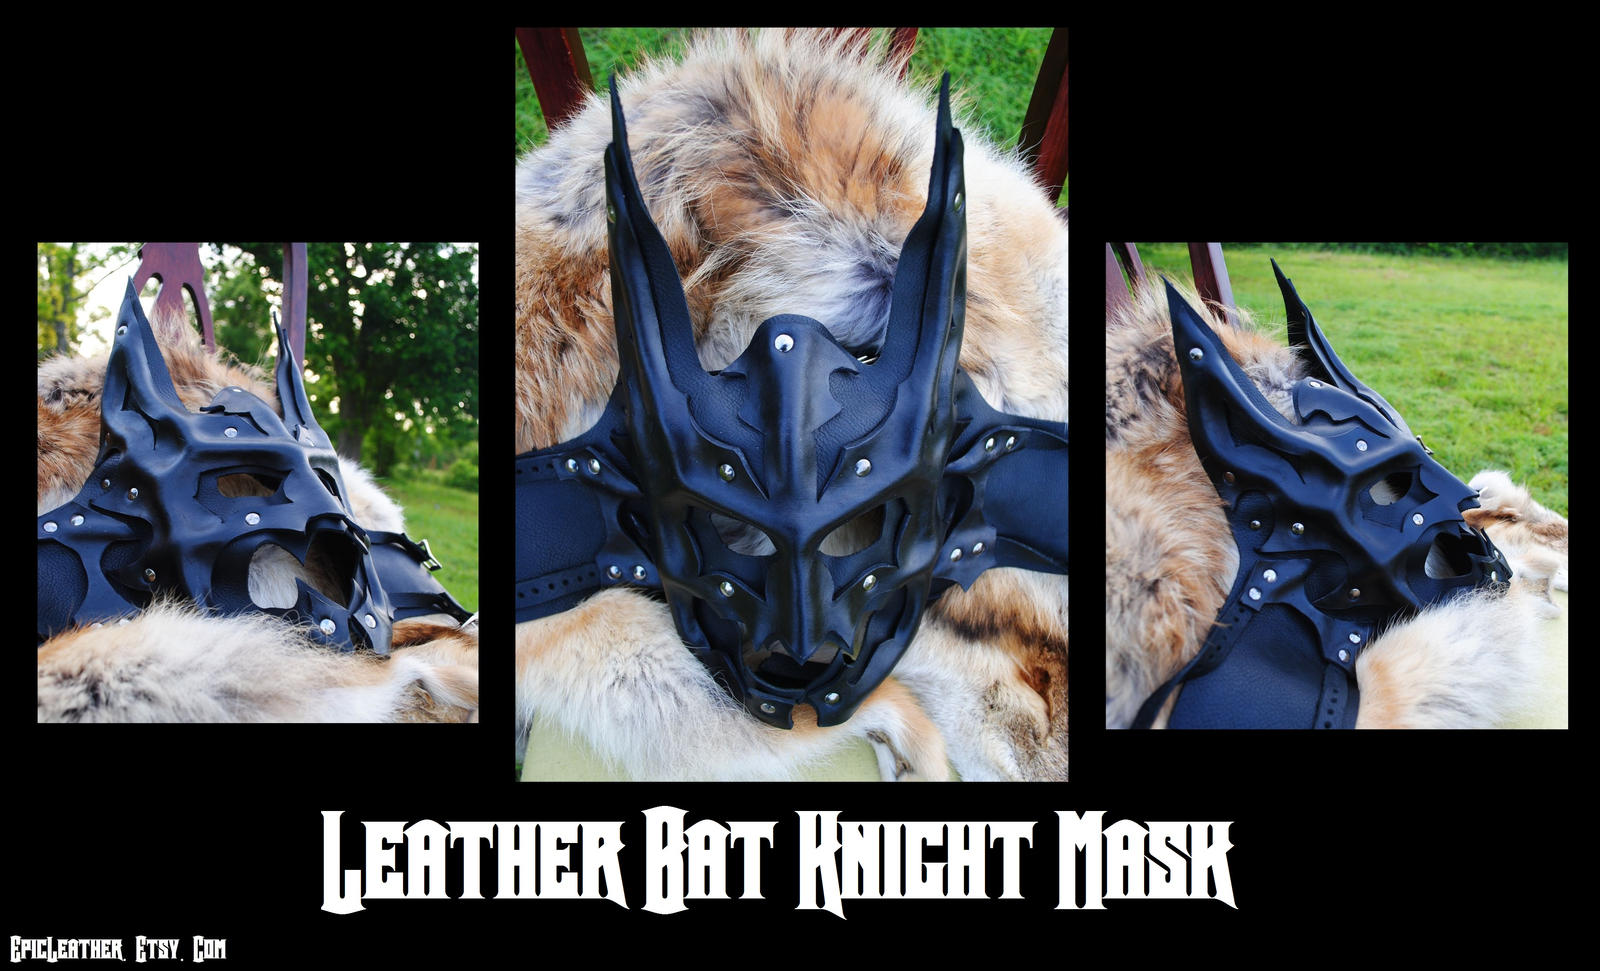 Leather Bat Knight Mask - Inspired by Batman by Epic-Leather